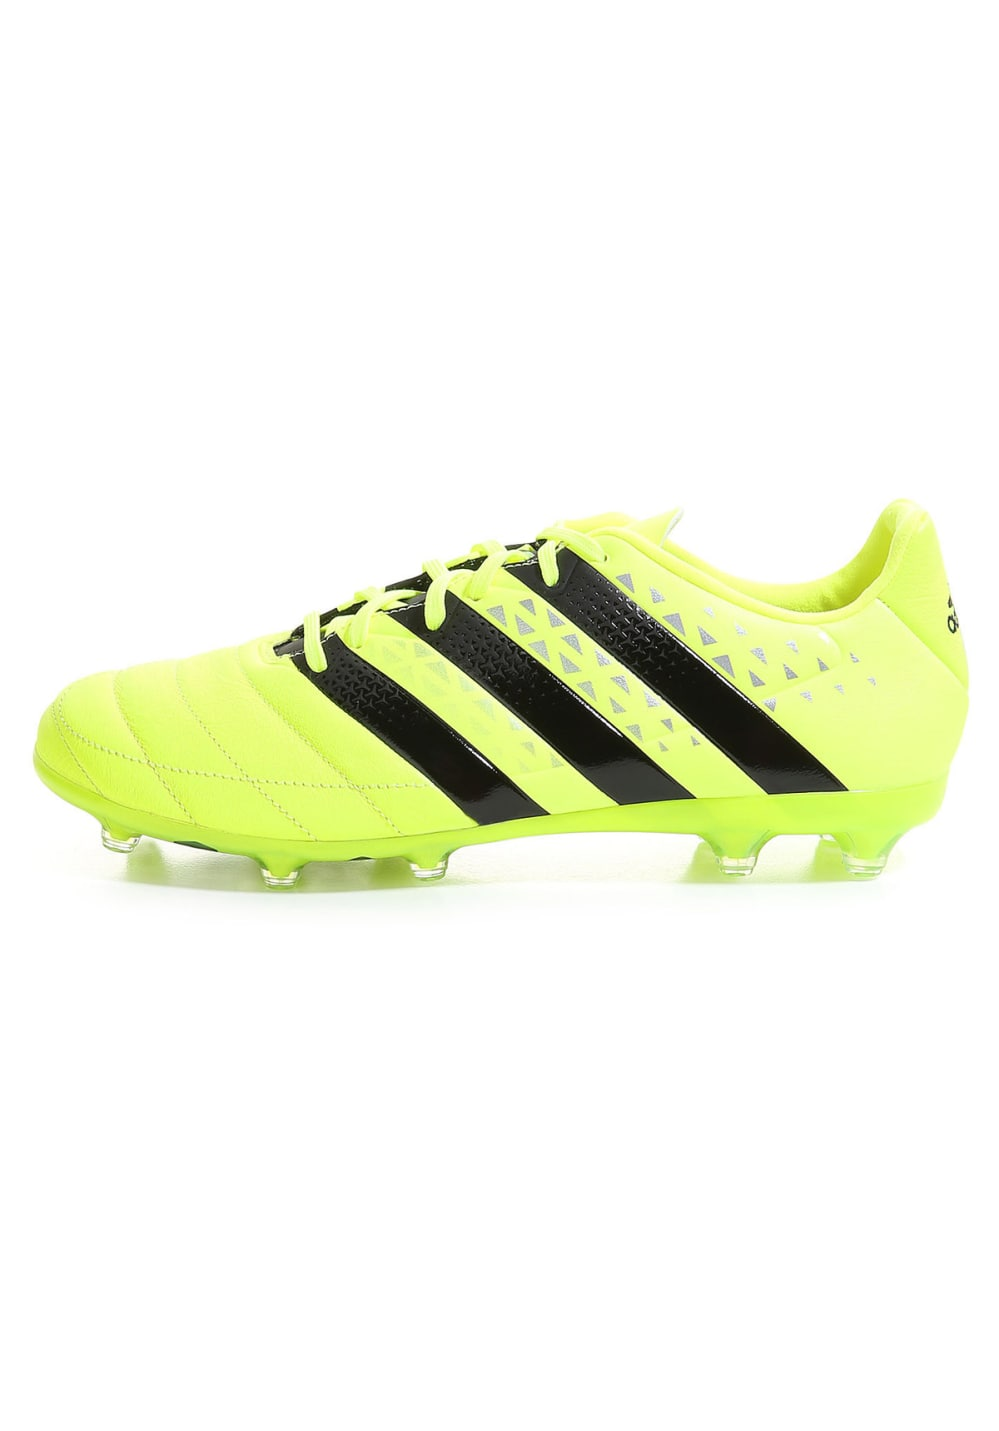 cheaper 1a40a de49d adidas ACE 16.2 FG Leather - Football Shoes for Men - Yellow